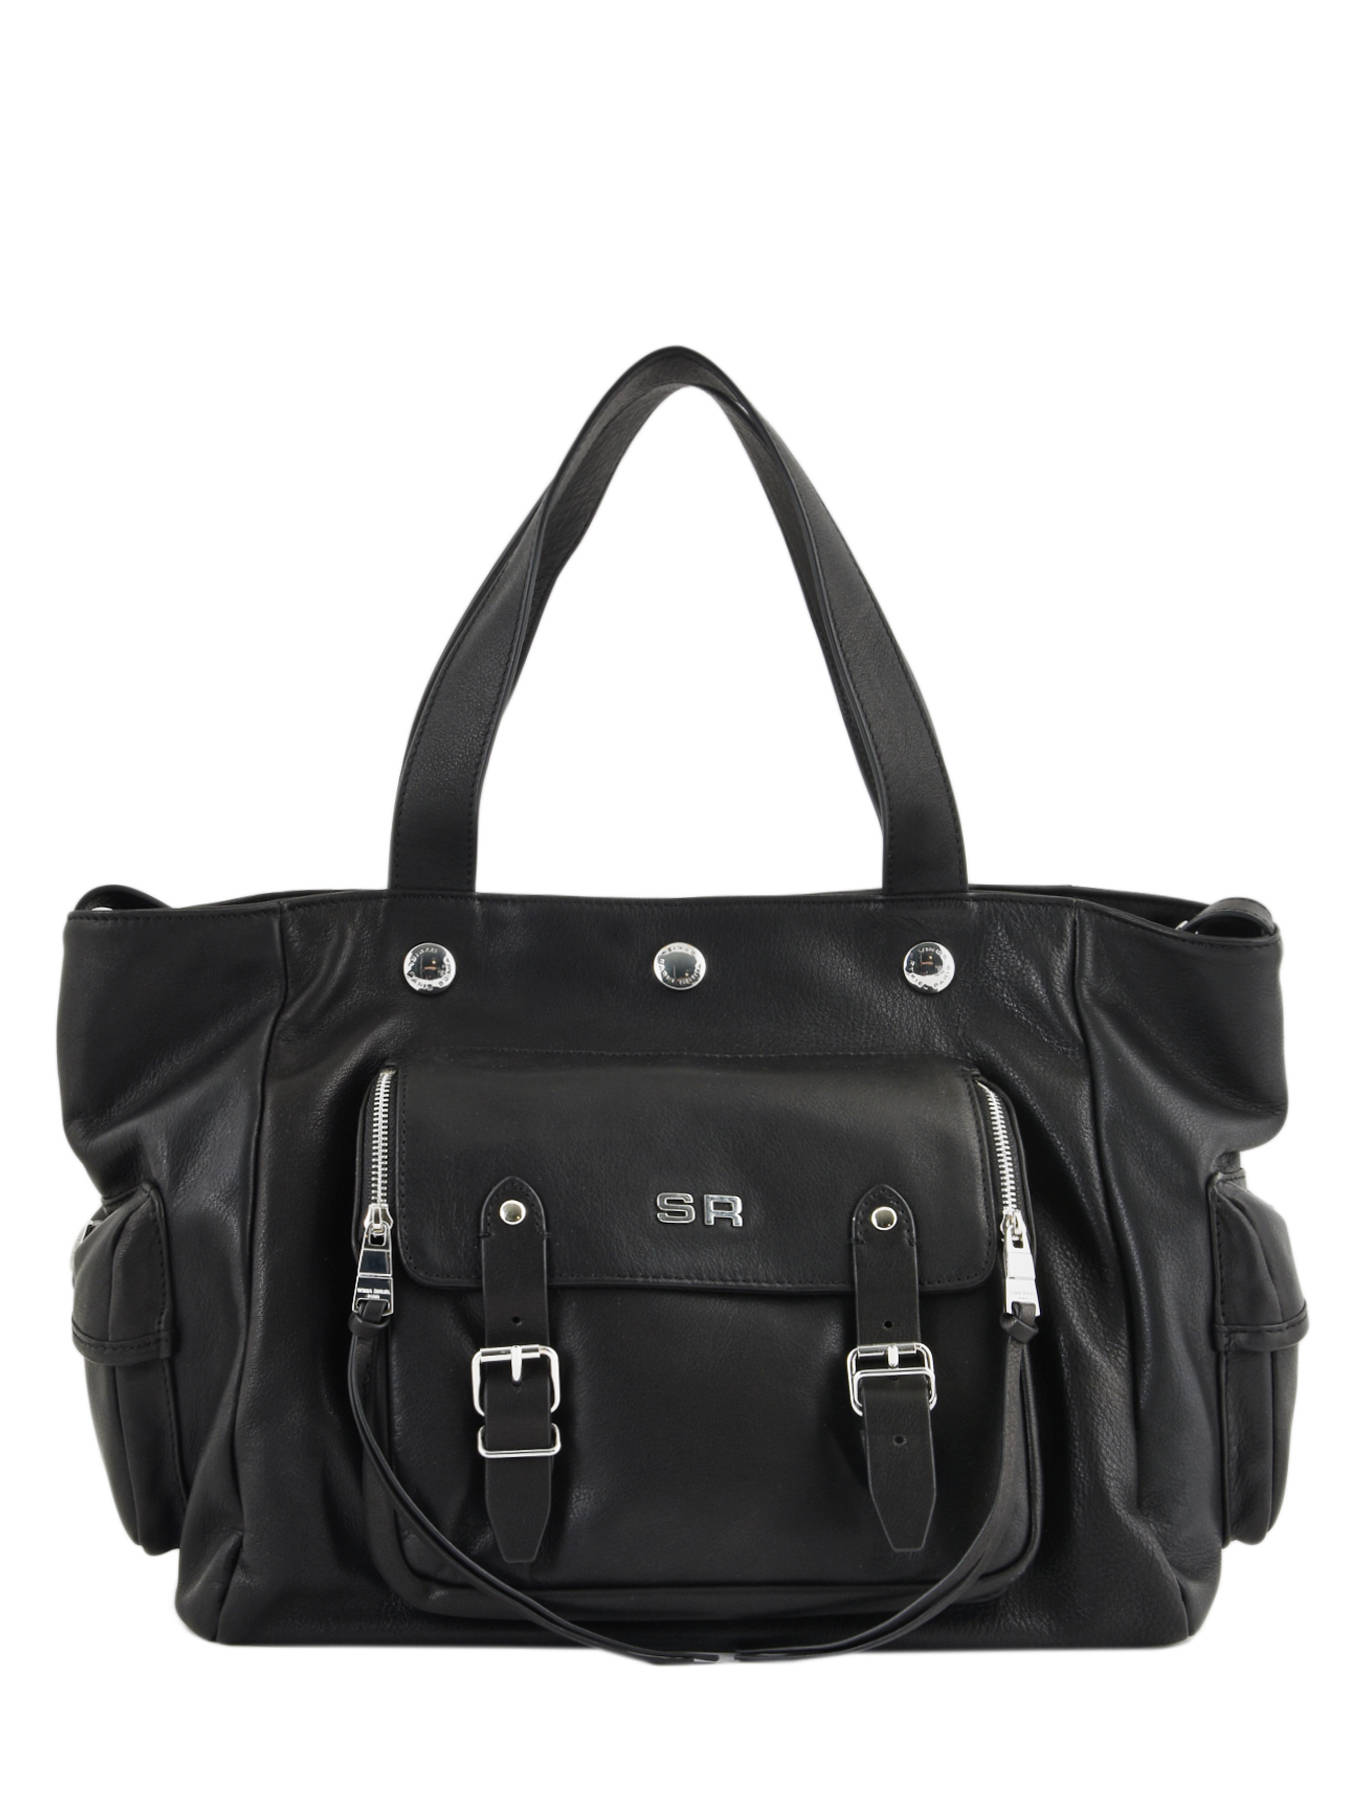 8967c192846 ... Sac Shopping Luxembourg Cuir Sonia rykiel Noir luxembourg 2296-44 ...